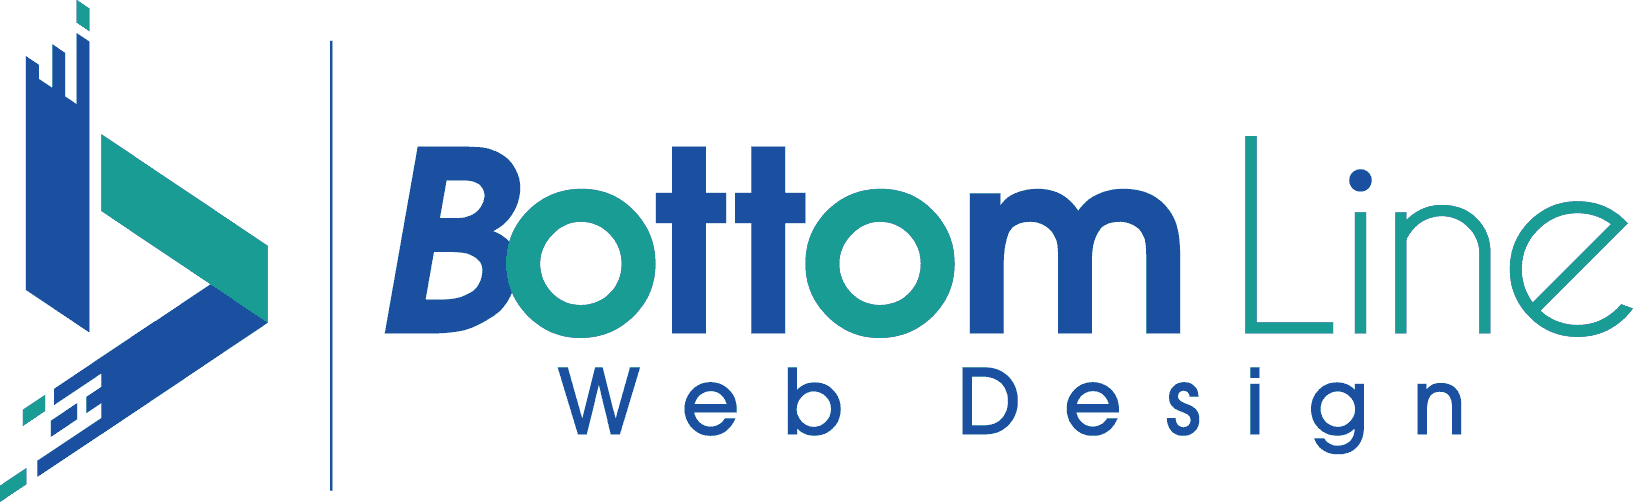 Bottom Line Web Design Shares Useful Tips for Working Remotely During the COVID-19 Pandemic